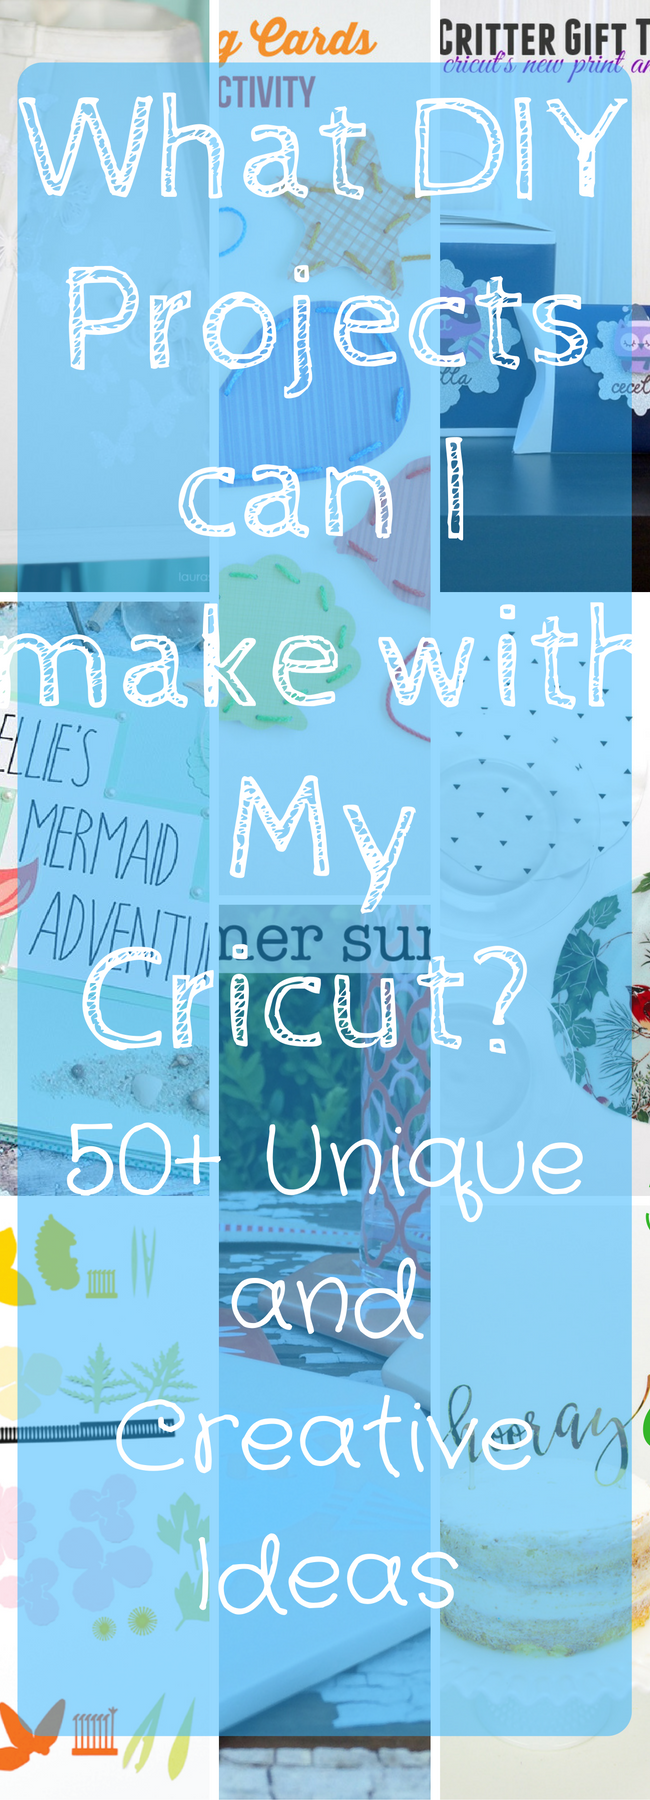 Over 50 Unique And Creative Diy Projects To Make With A Cricut Circuit Art Machine Personal Electronic Cutting Craft